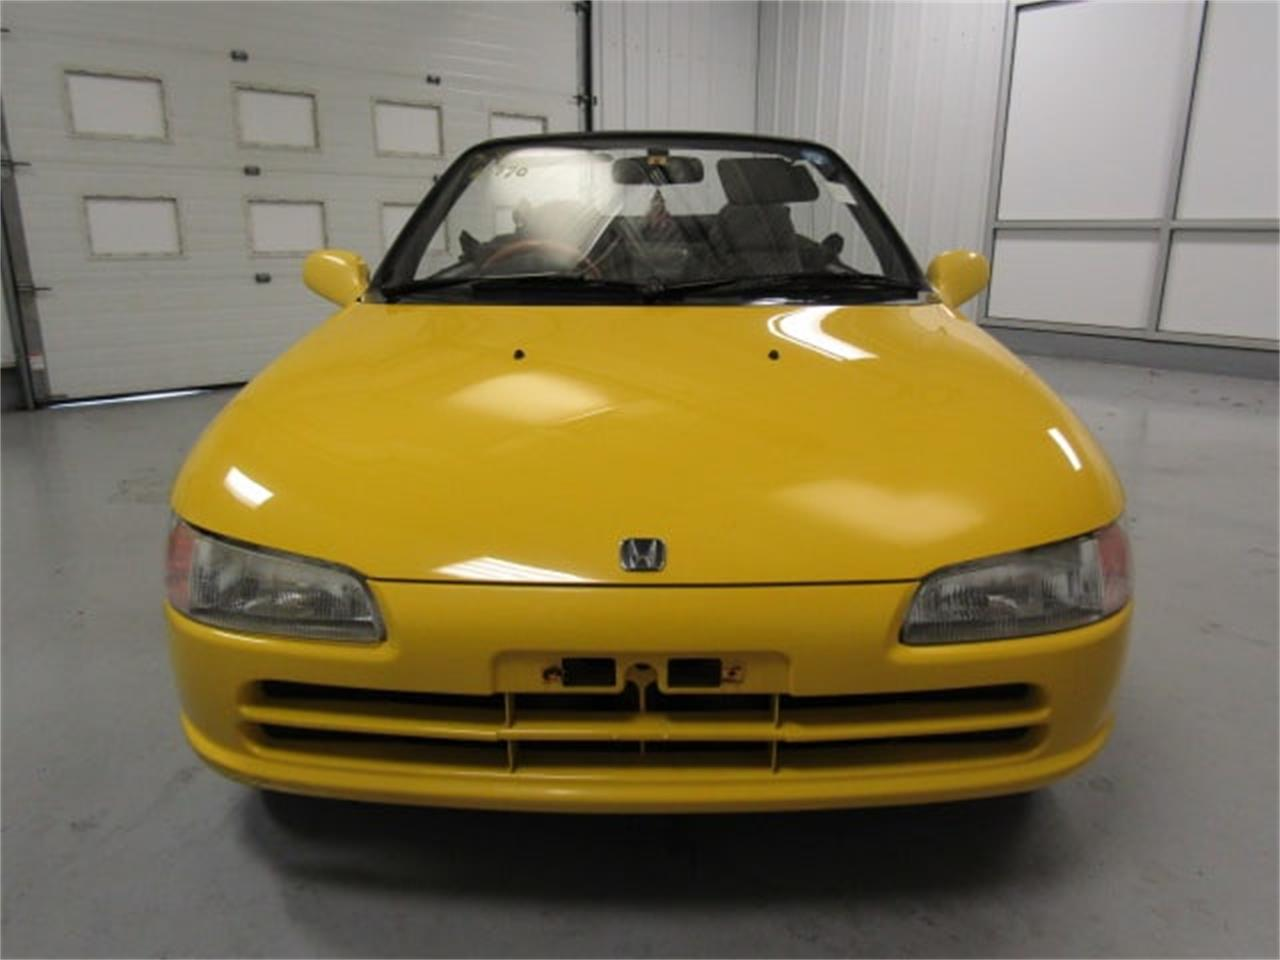 Large Picture of '91 Beat located in Virginia - $4,990.00 Offered by Duncan Imports & Classic Cars - JL81